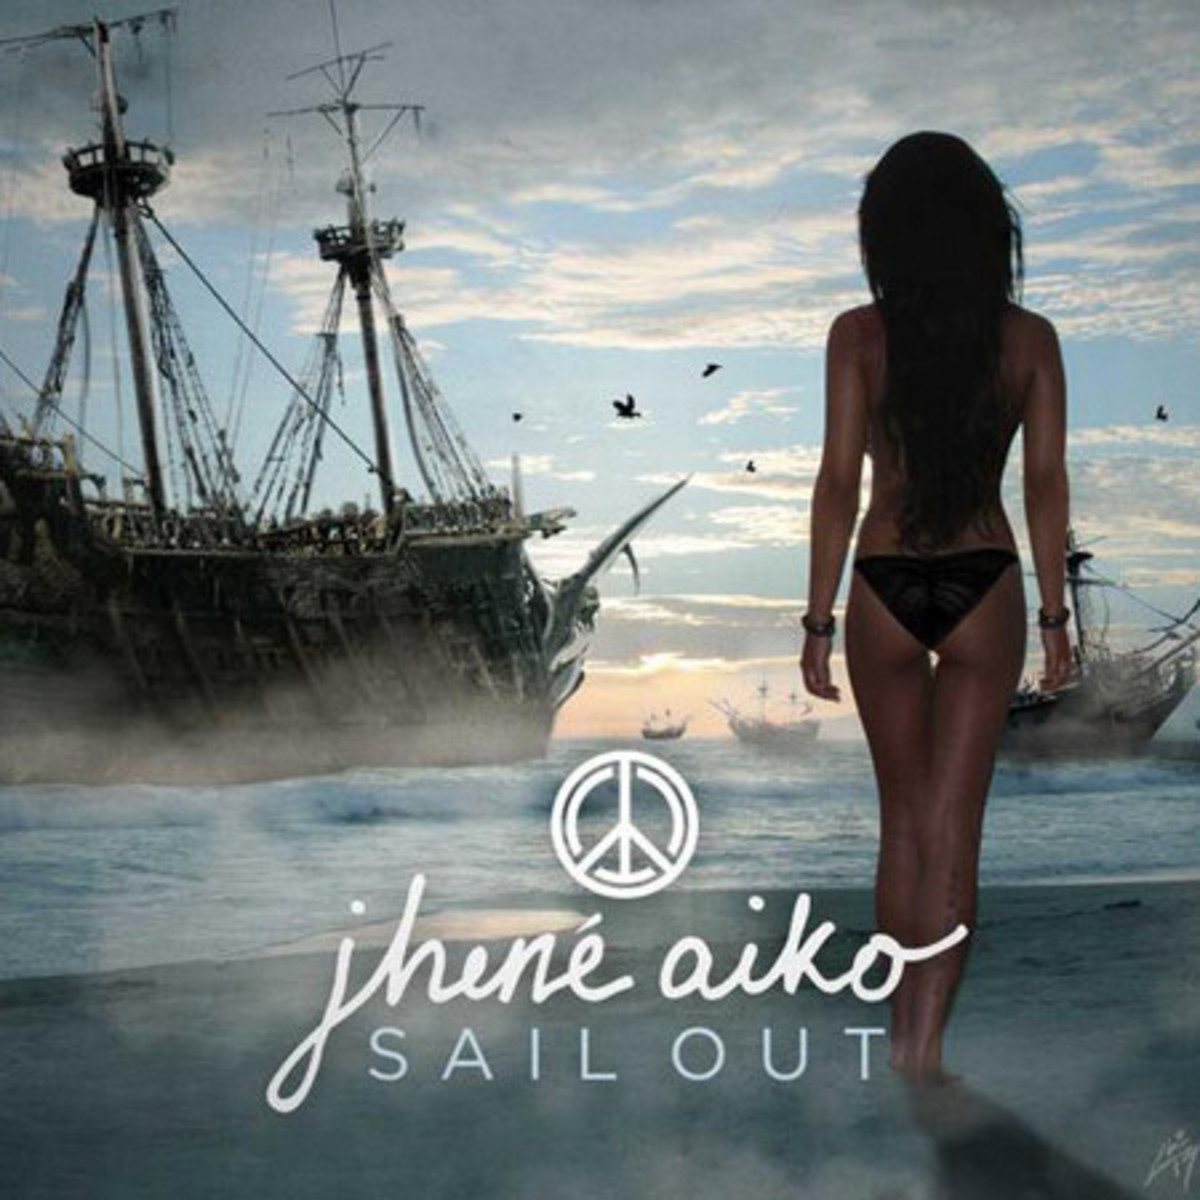 jhene-aiko-sail-out-ep.jpg